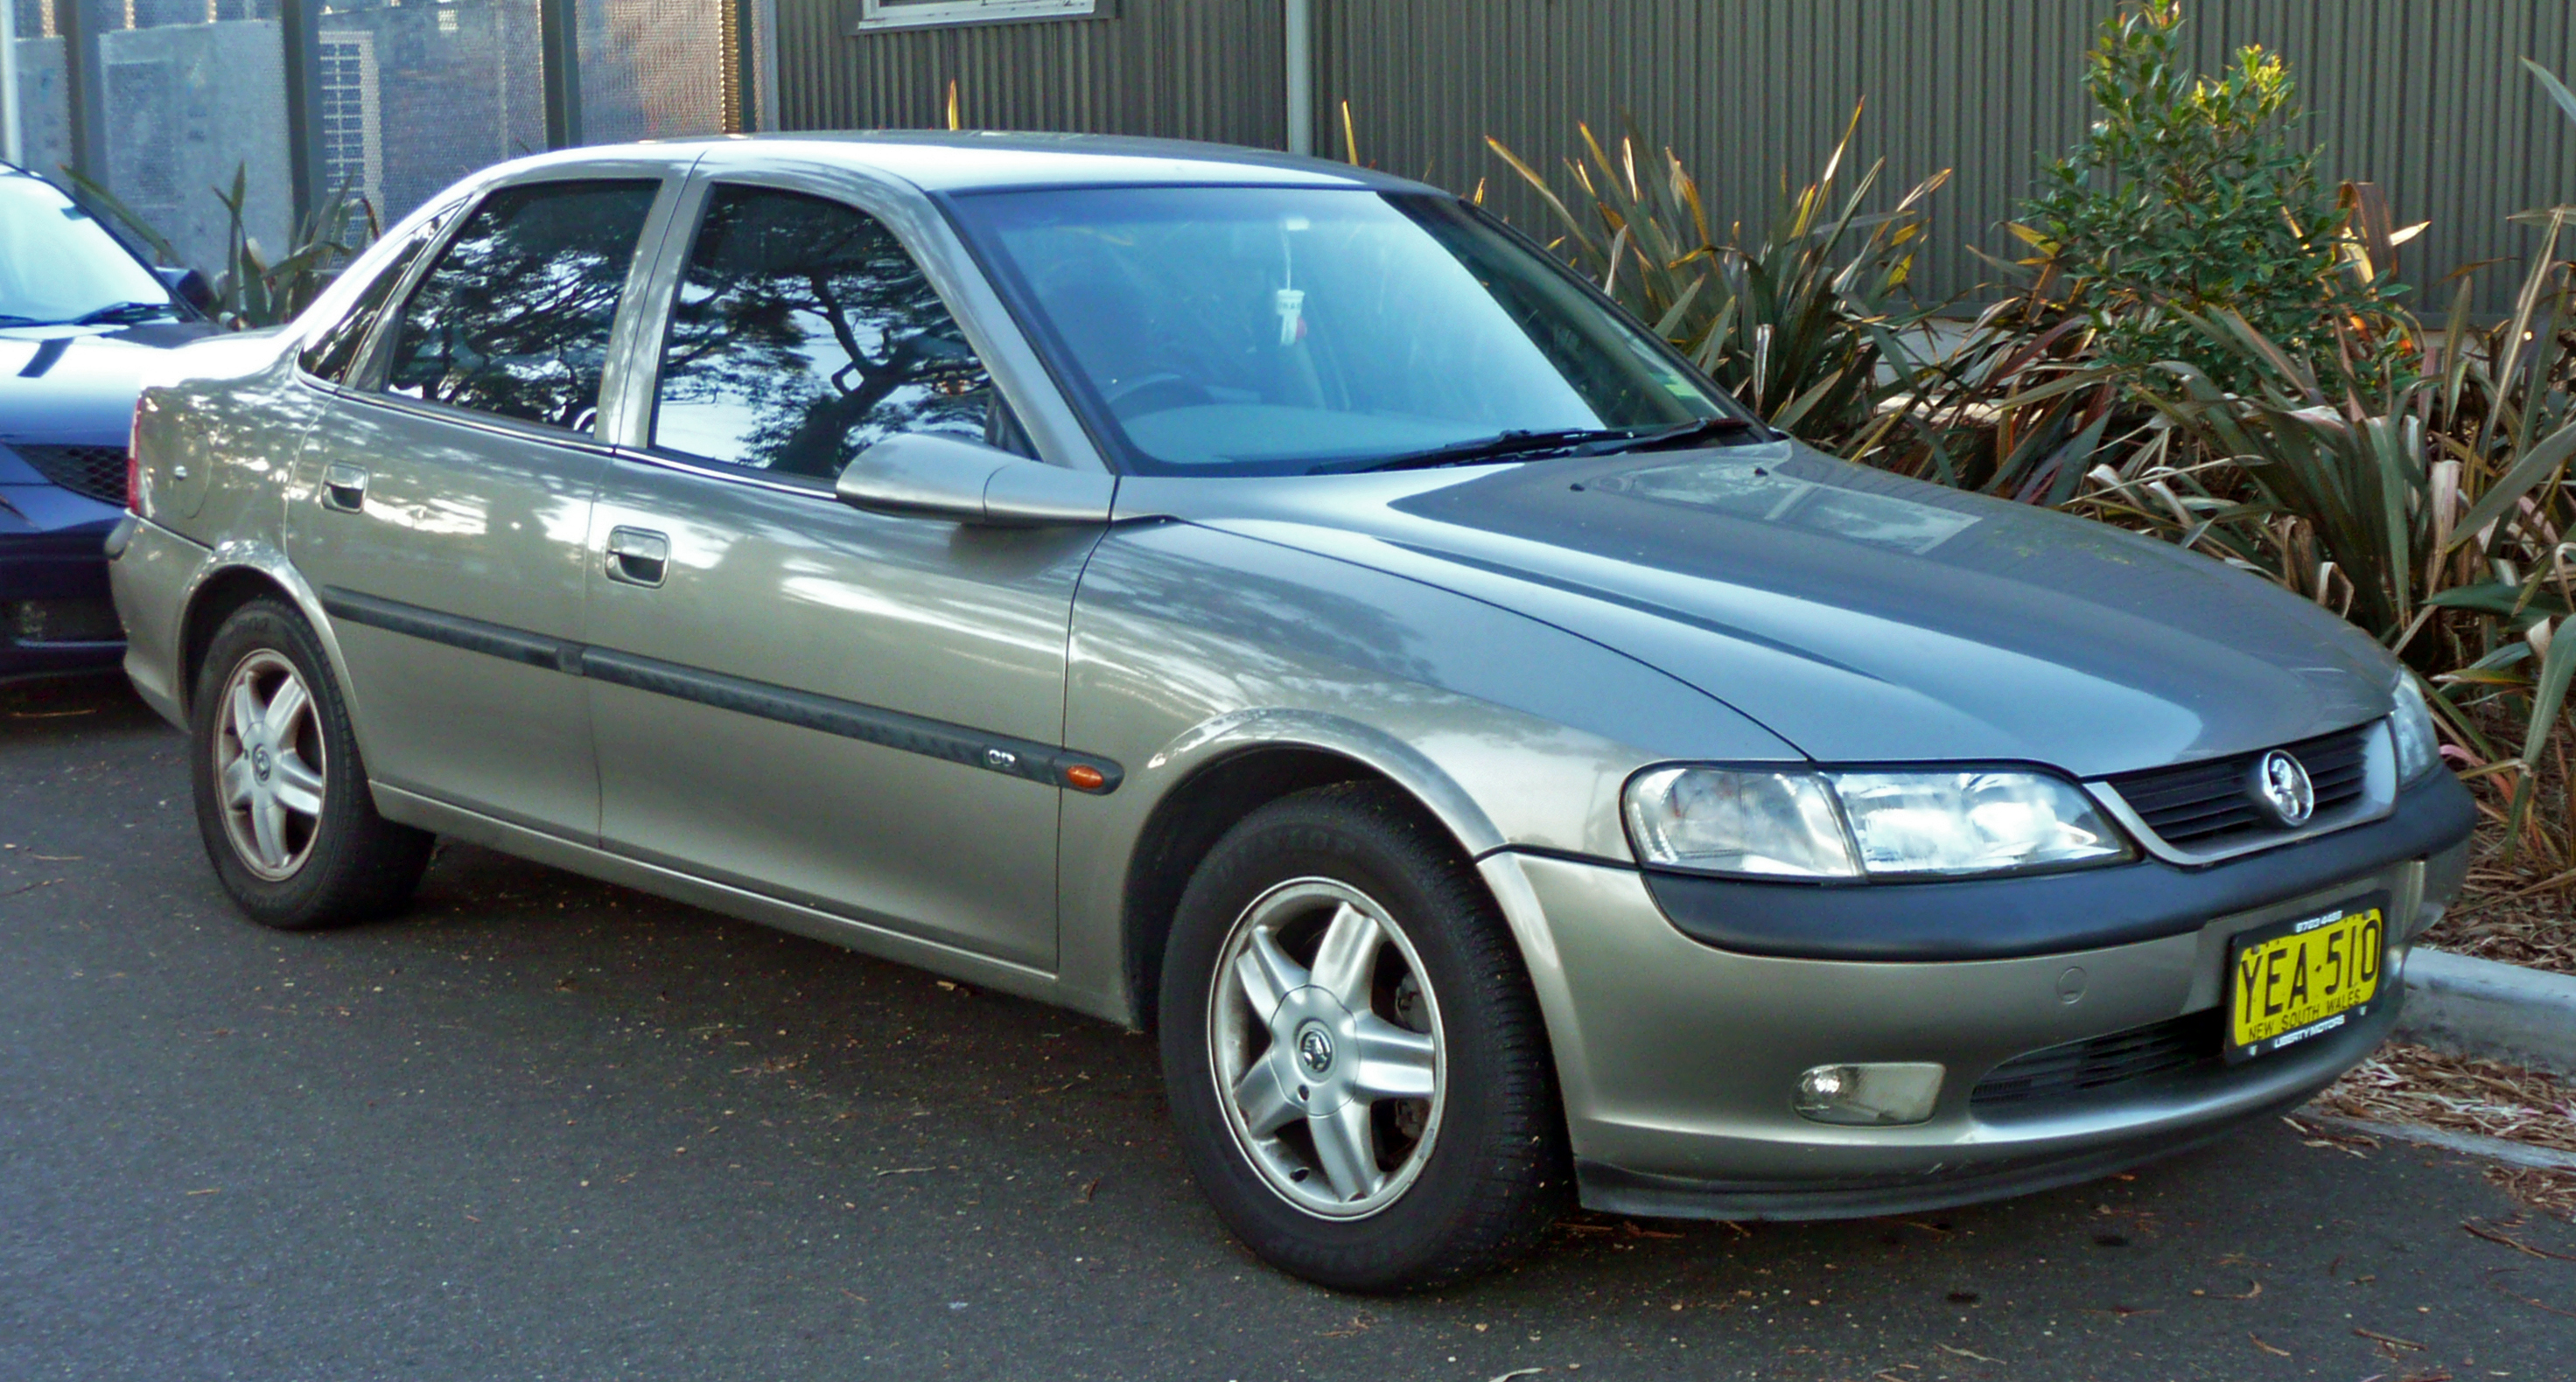 File:1999 Holden Vectra (JS) CD sedan (2010-05-08